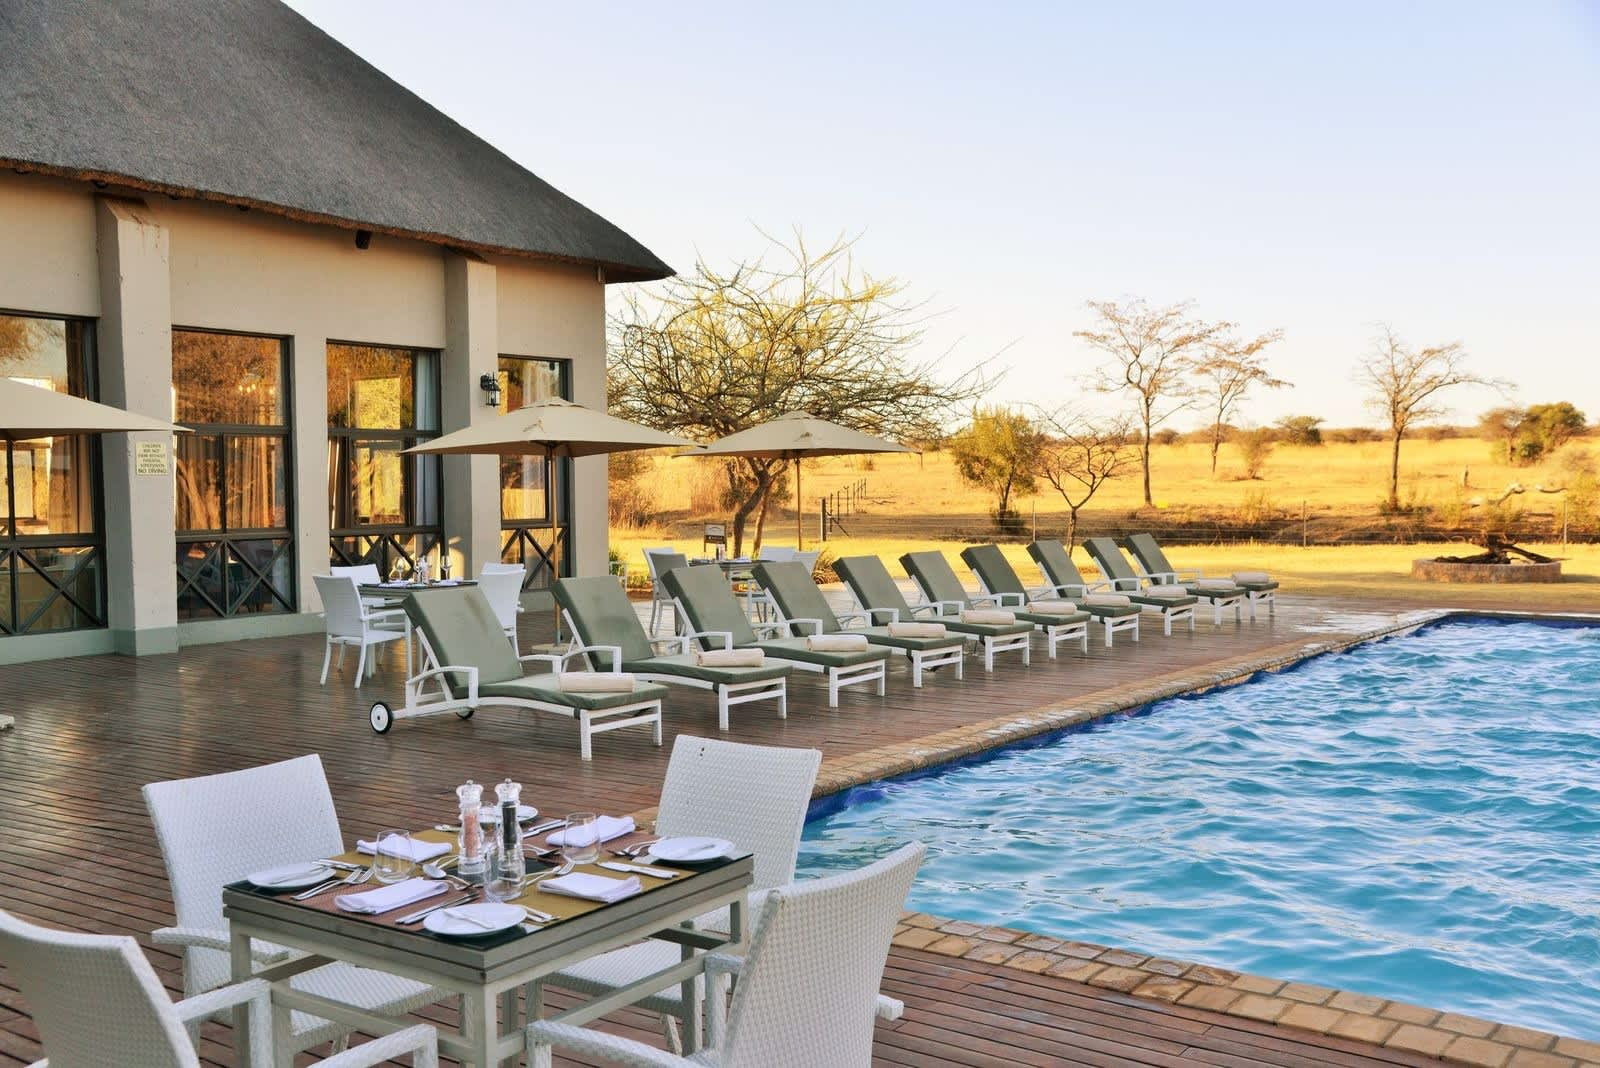 SAFARI PLAINS - 1 Night MIDWEEK Tented Stay for 2 people + Meals + Game Drives from R4 499!